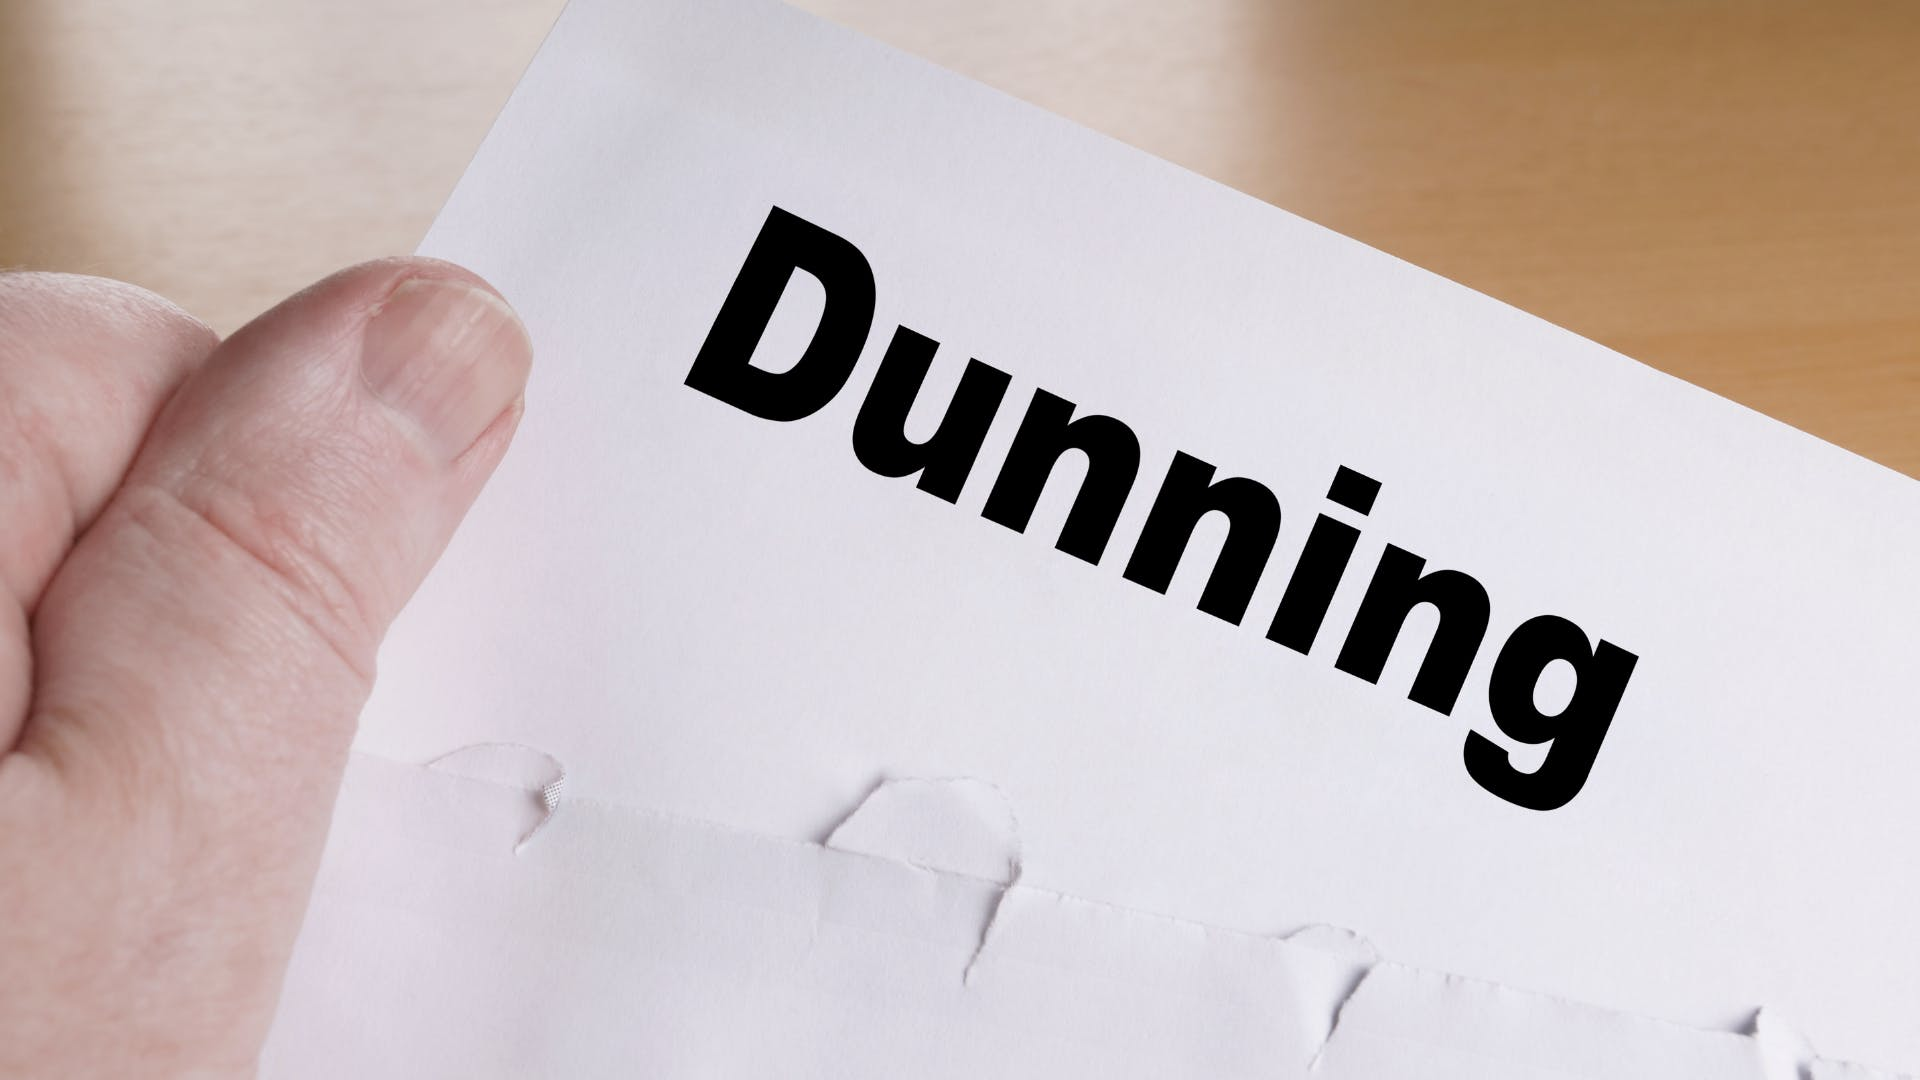 dunning letter.png